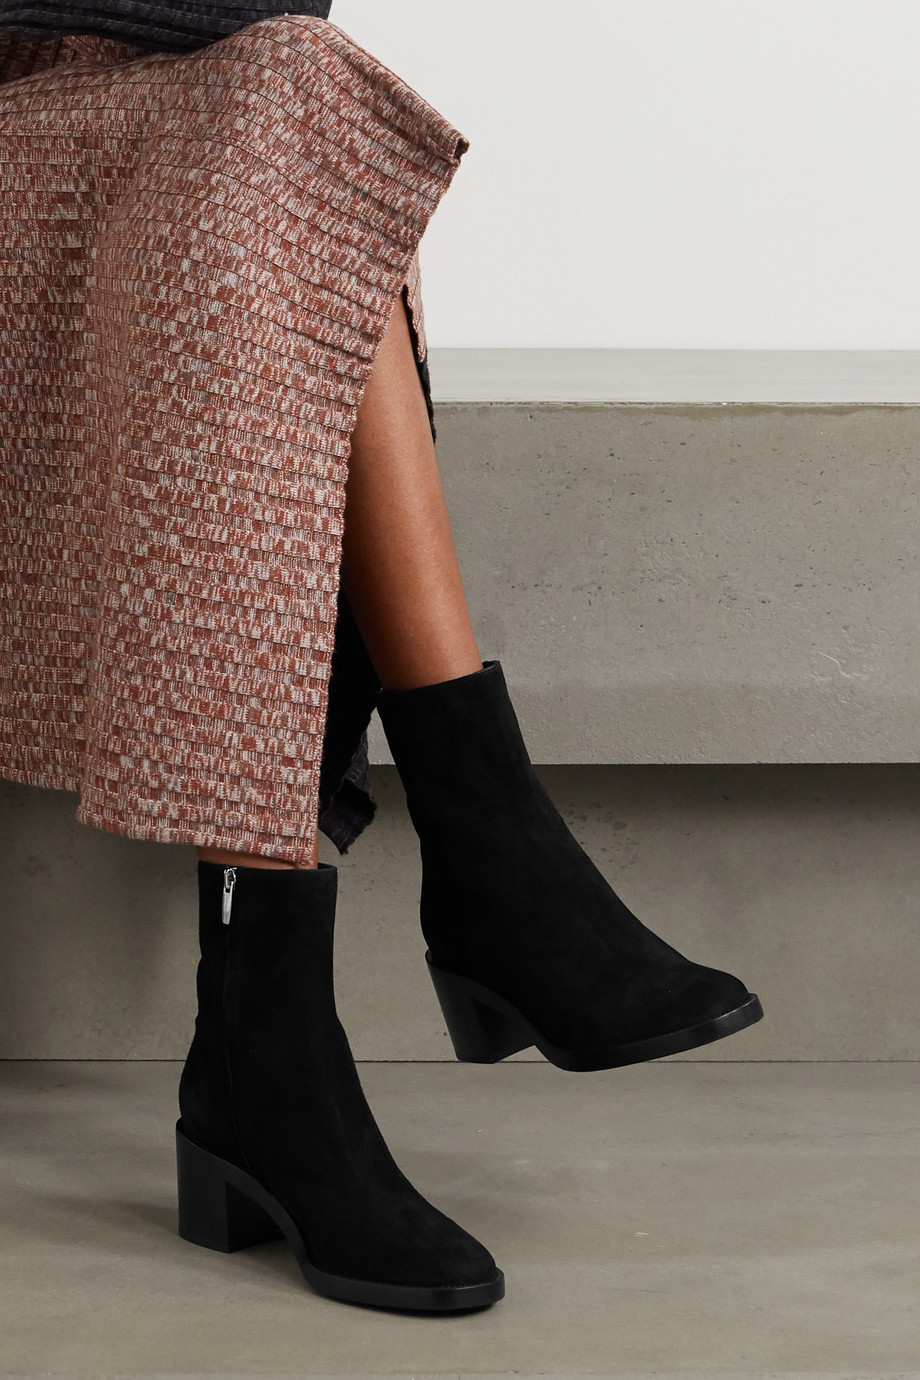 Gianvito Rossi Bottines en daim 60